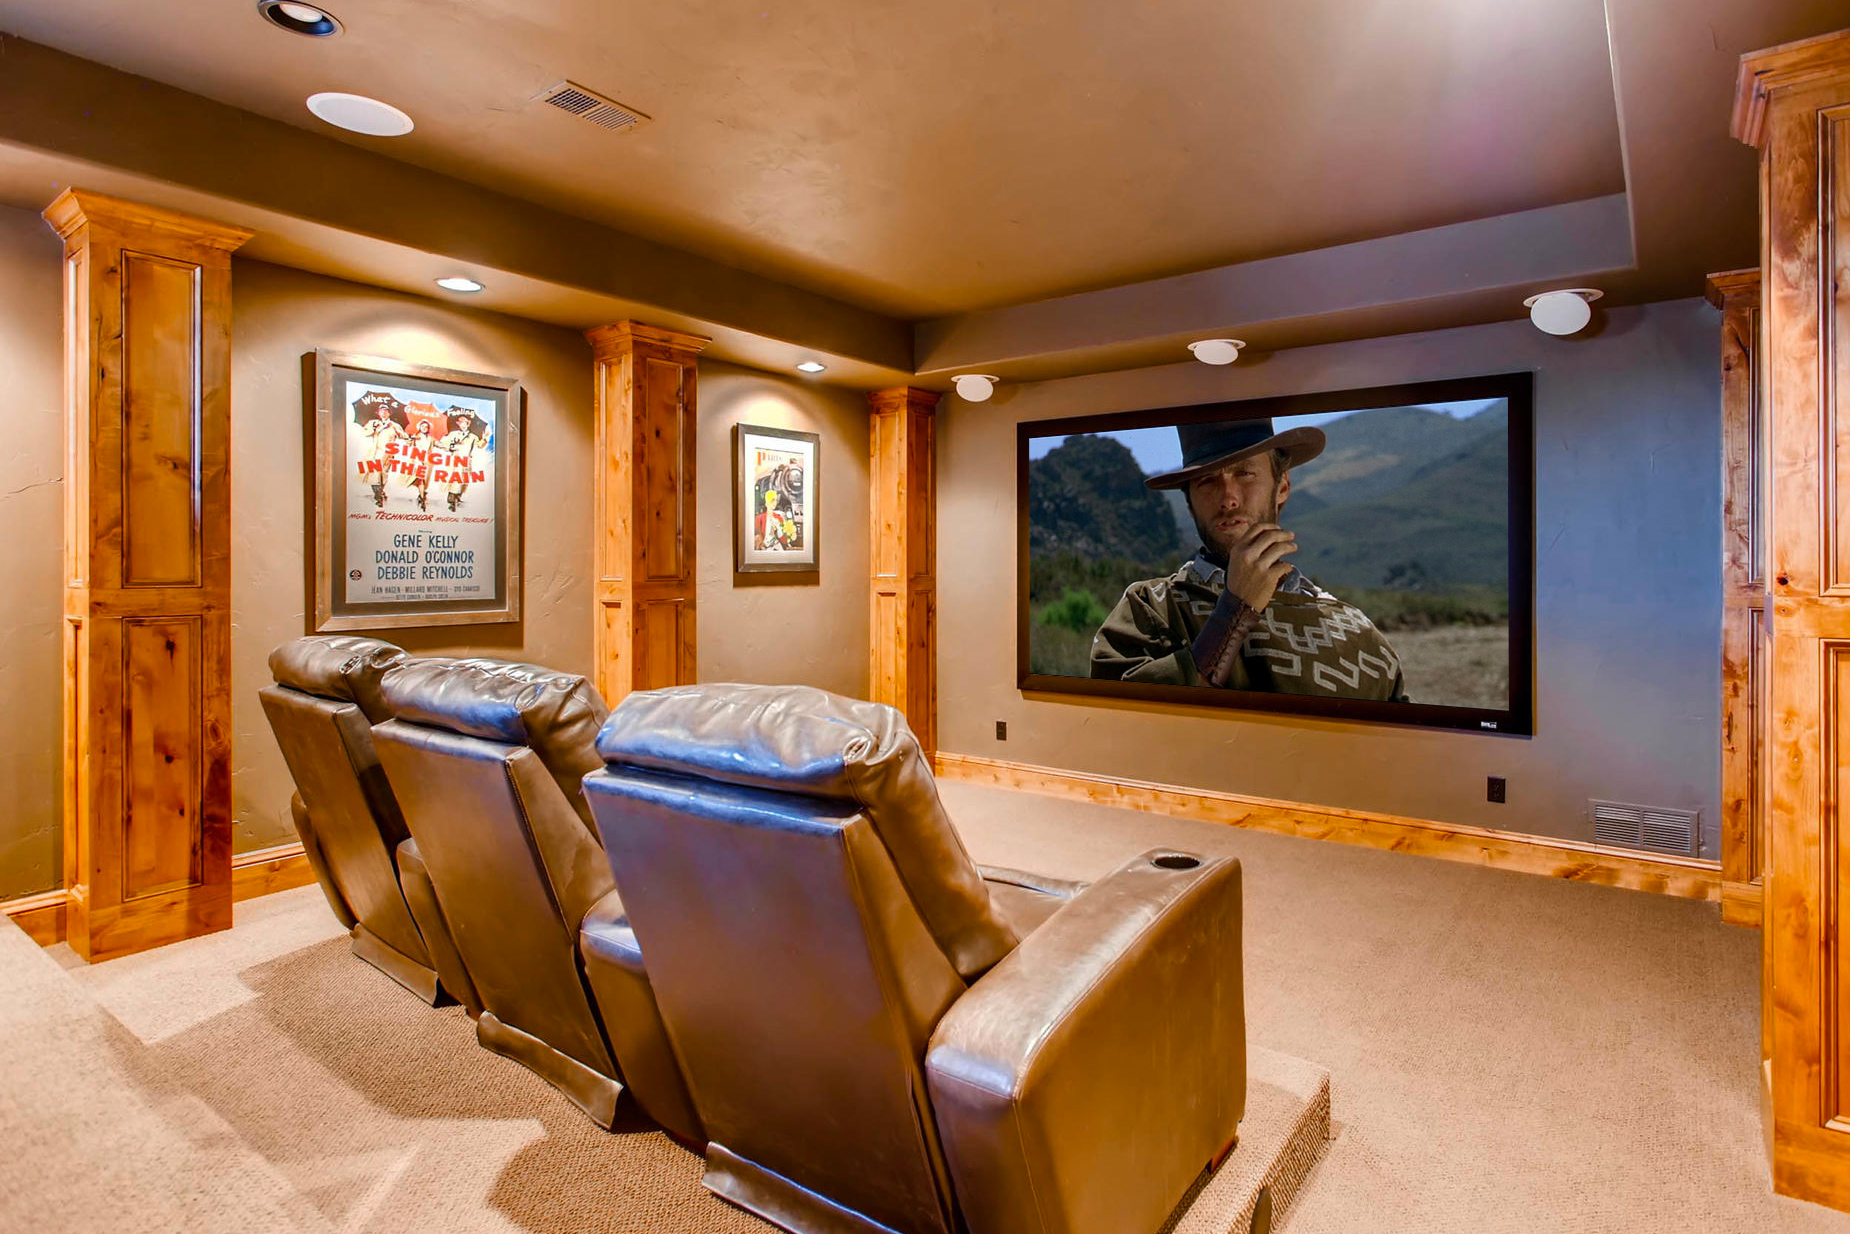 Five Ways To Enjoy Your Home Theater Room